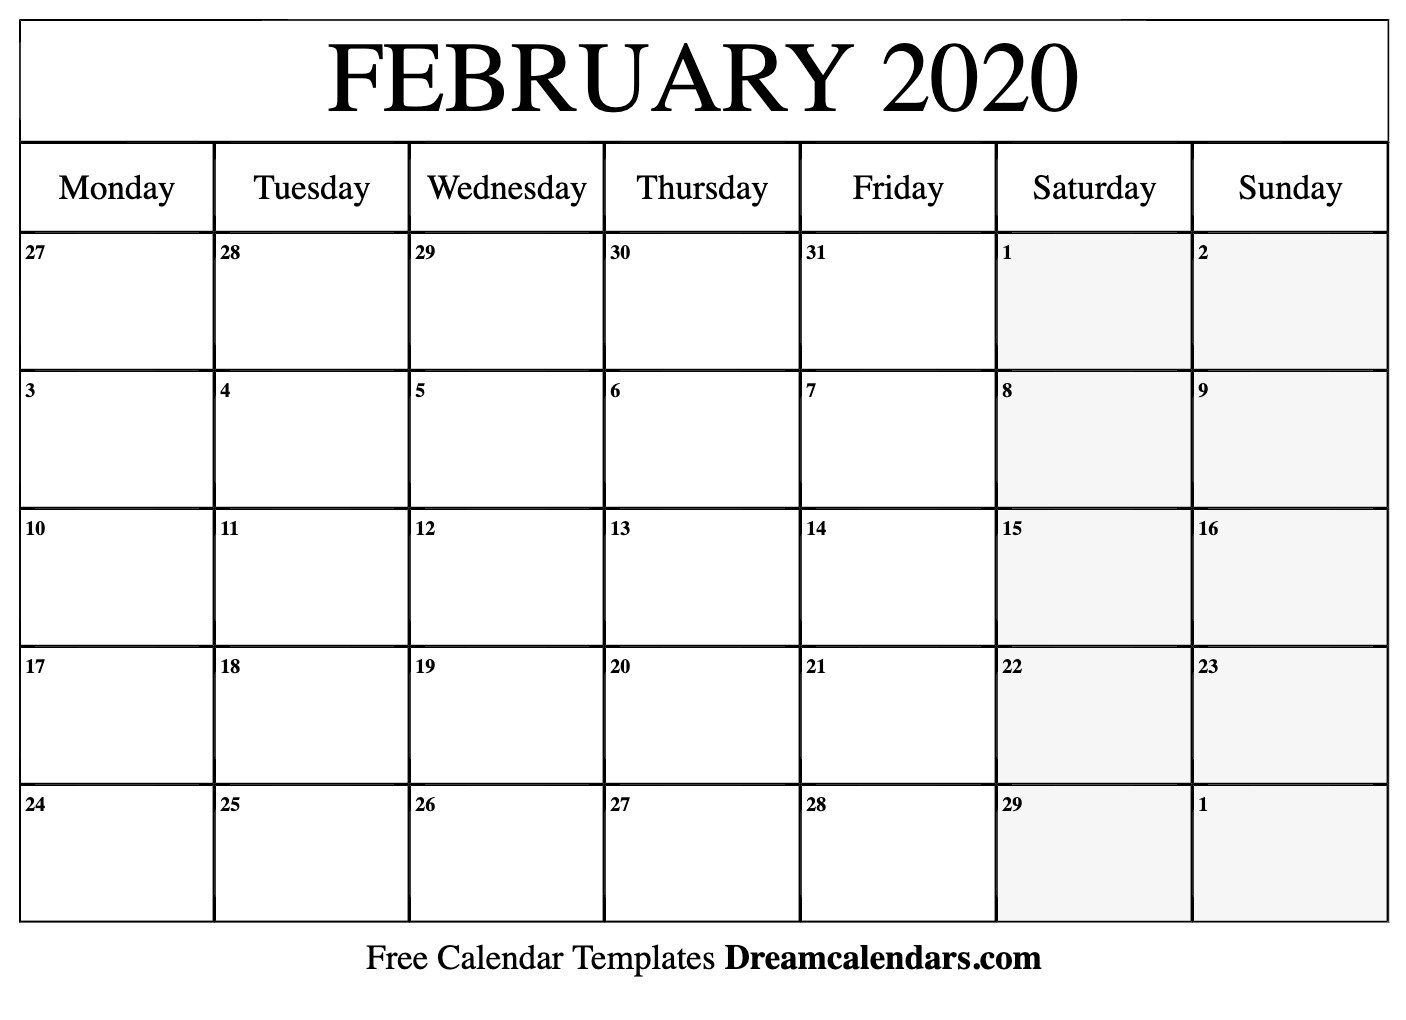 Printable February 2020 Calendar Printable Calendar For The Week Of March 2 Thru March 6